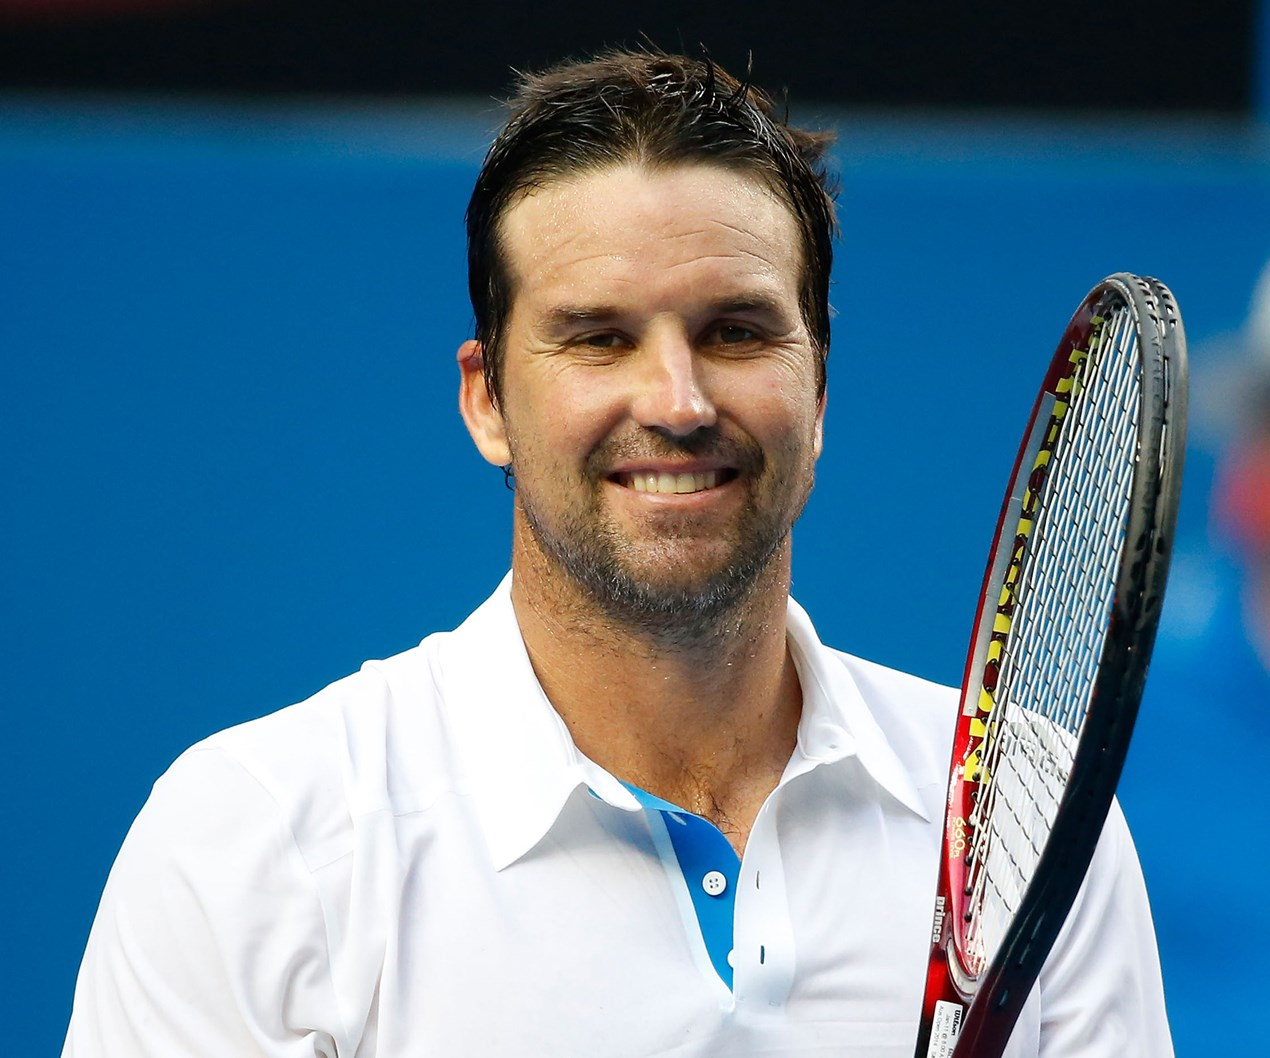 Was Pat Rafter the last Aussie gentleman to play great tennis?